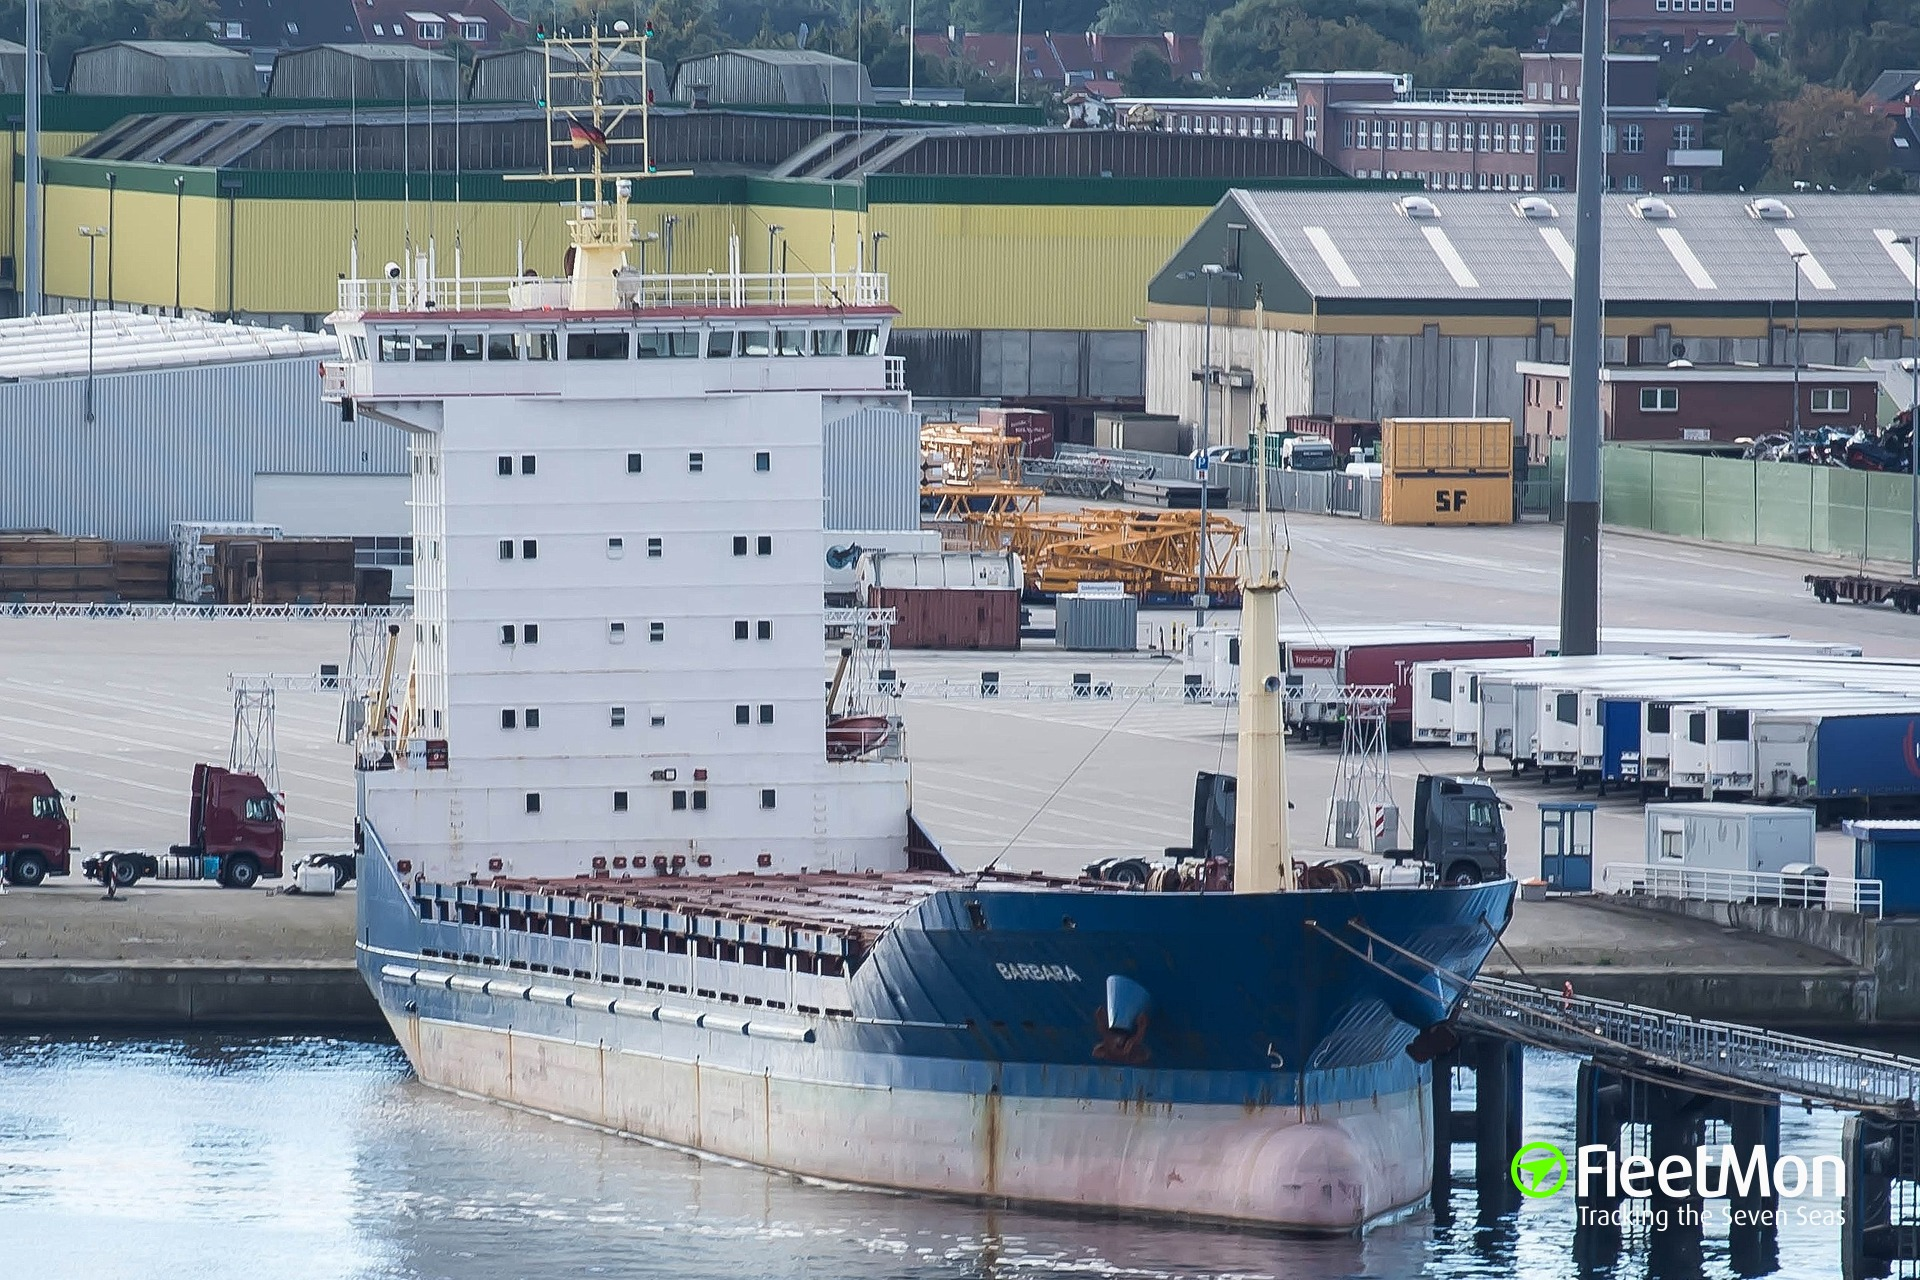 German freighter Barbara arrested in Assens, Denmark